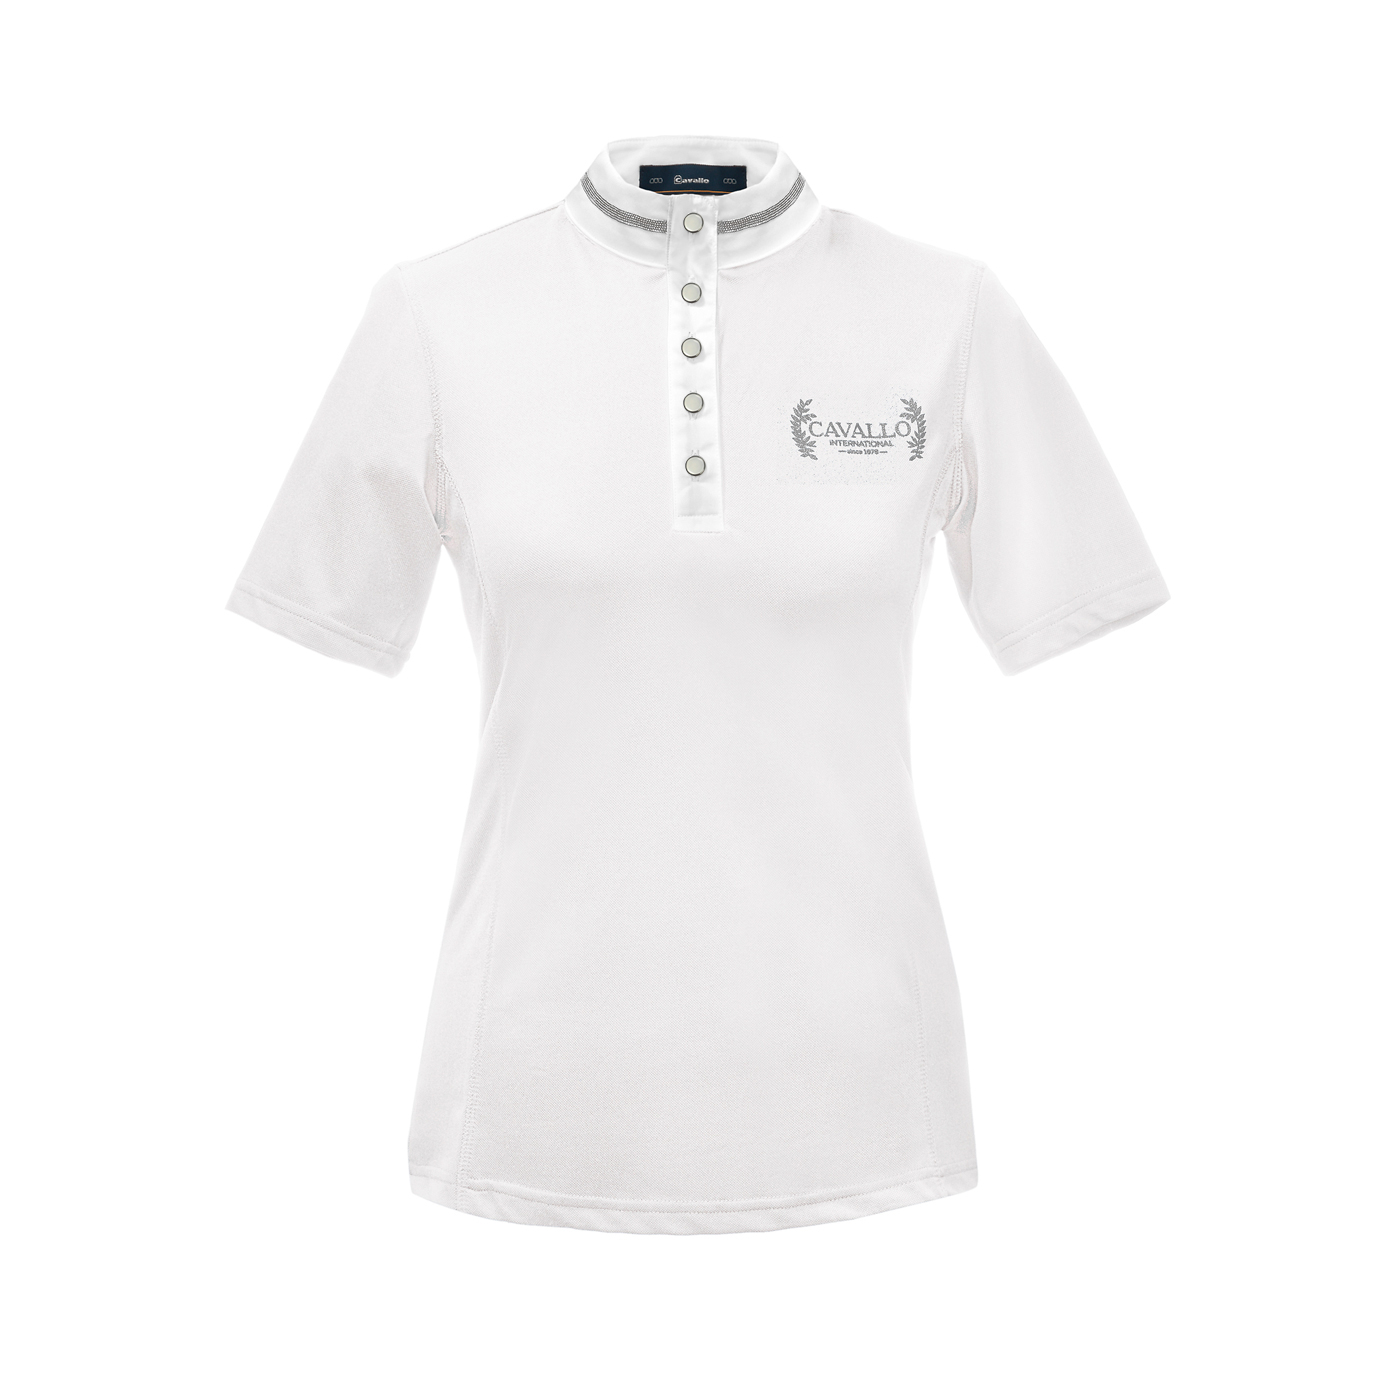 Cavallo Madlen White Ladies Equestrian Show Shirt